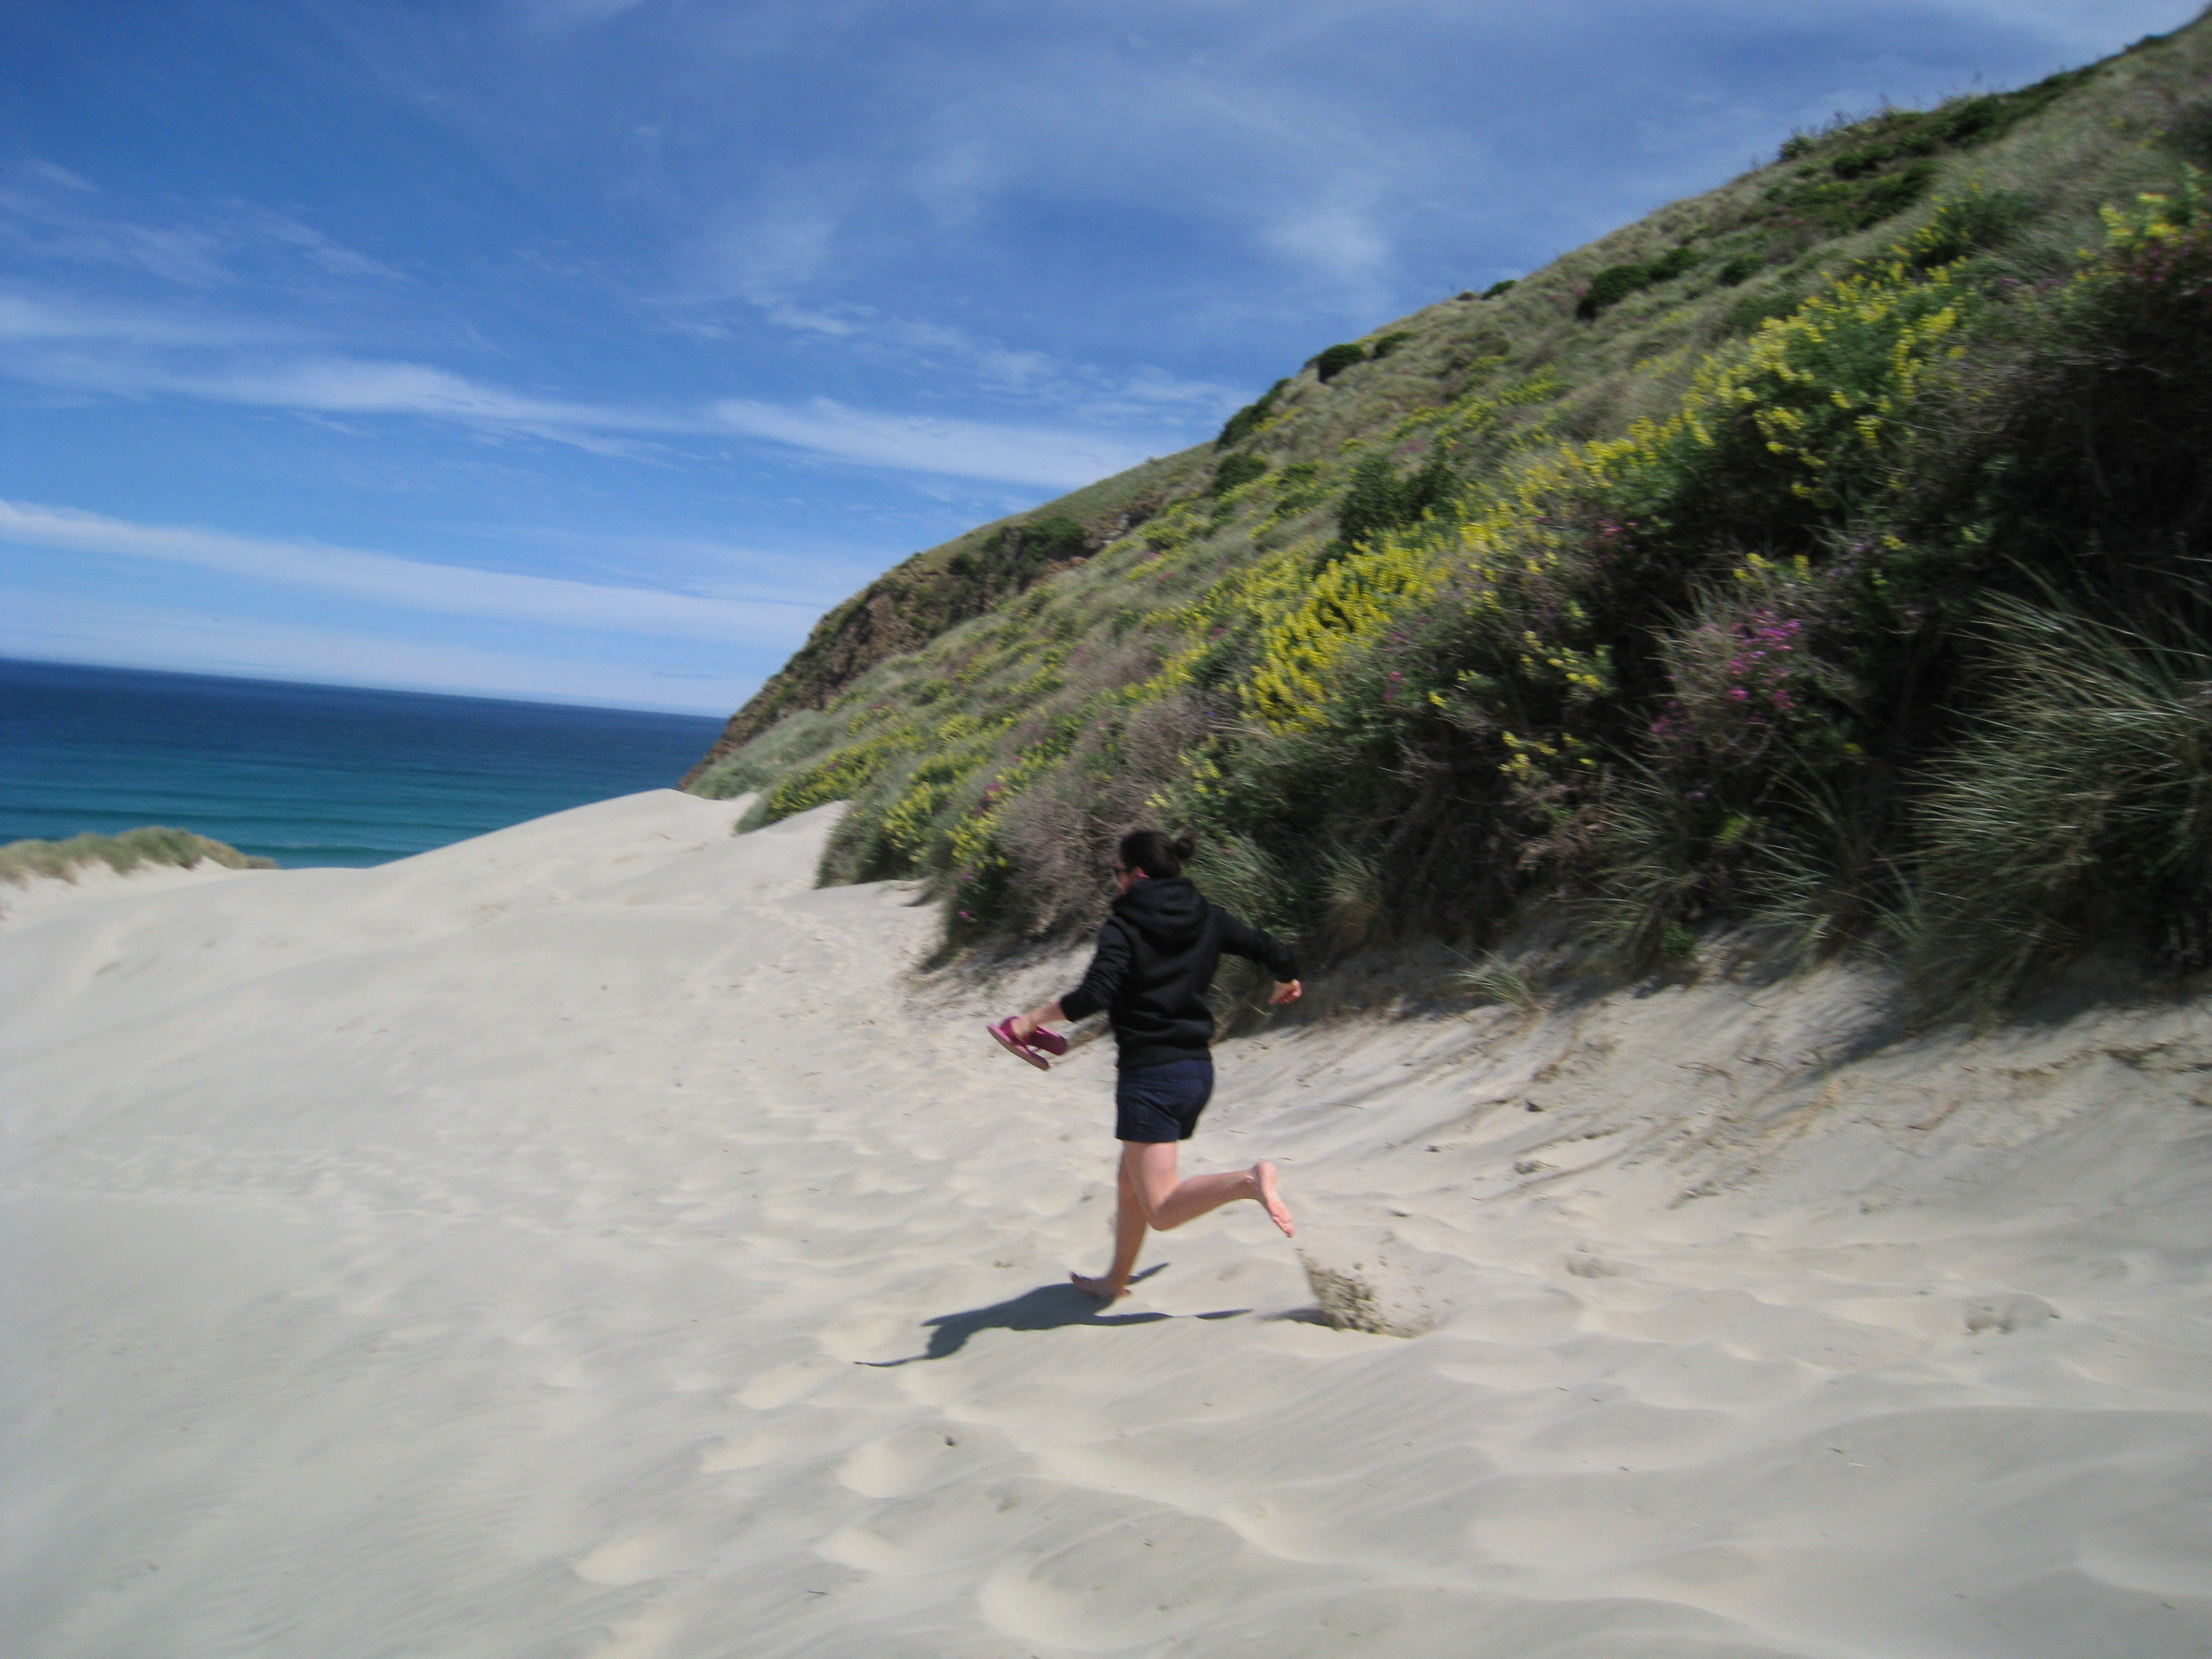 Flying down the sand dunes